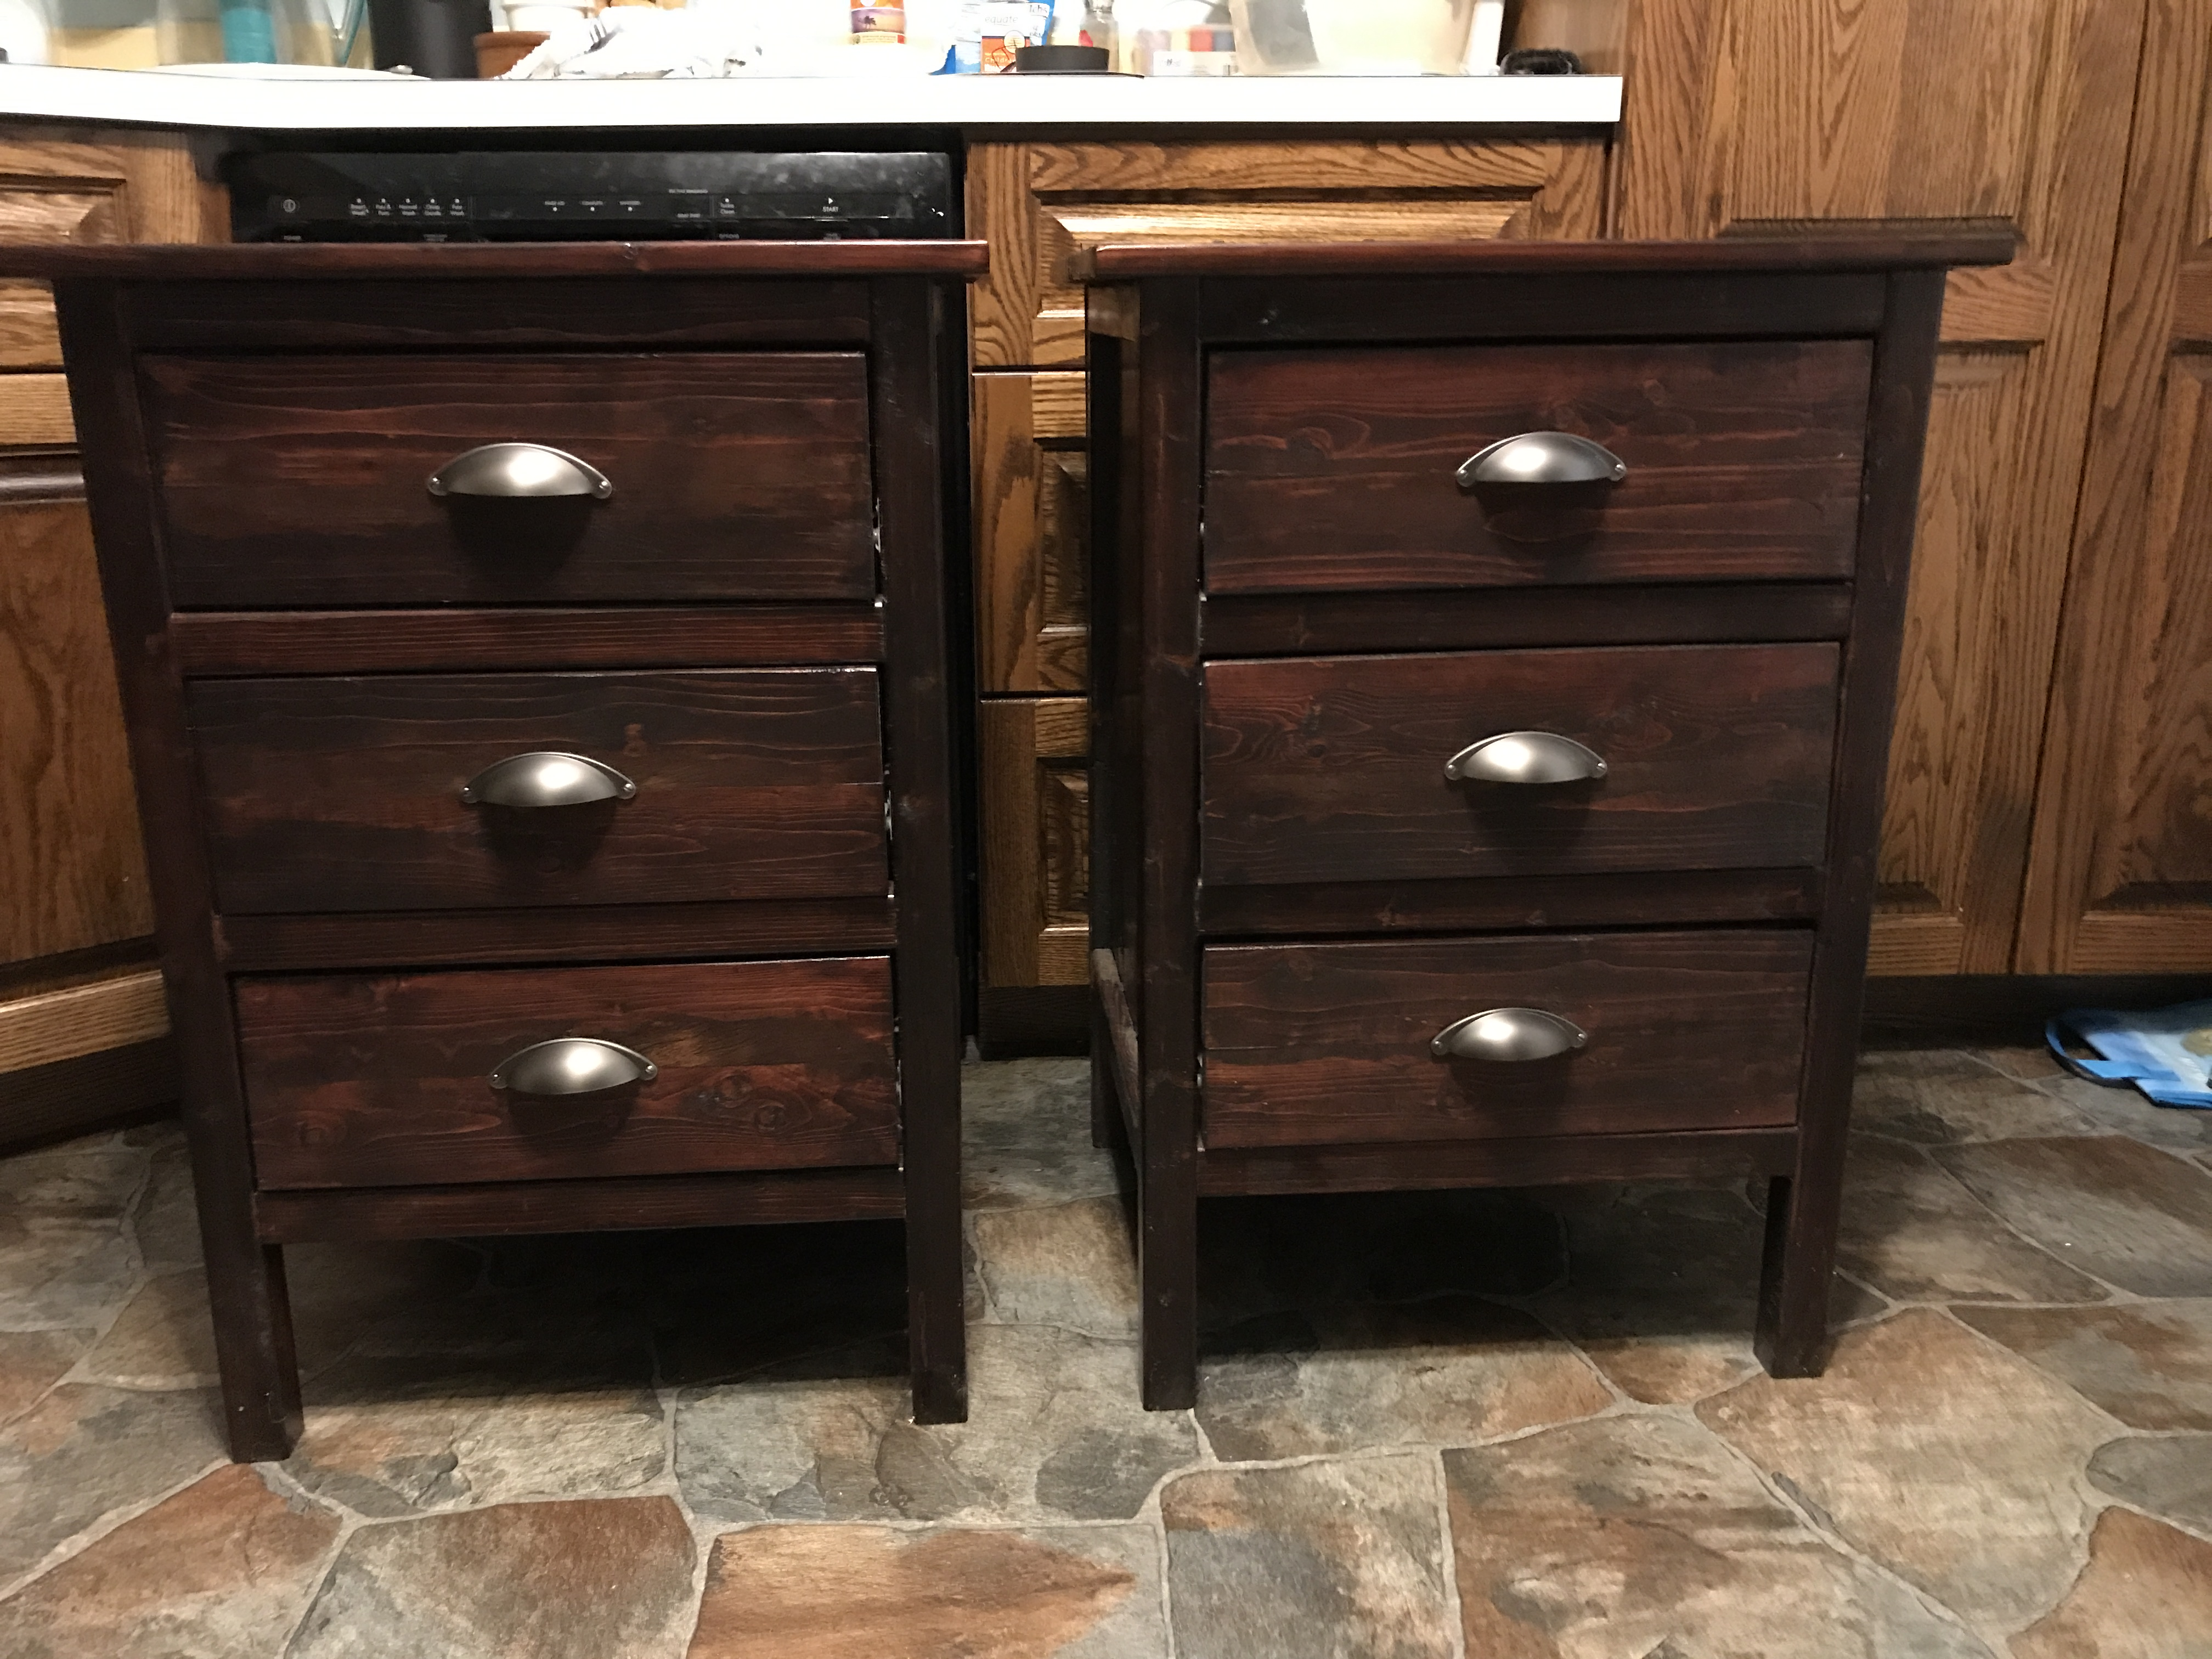 Ana White Reclaimed Wood Look Nightstands Diy Projects